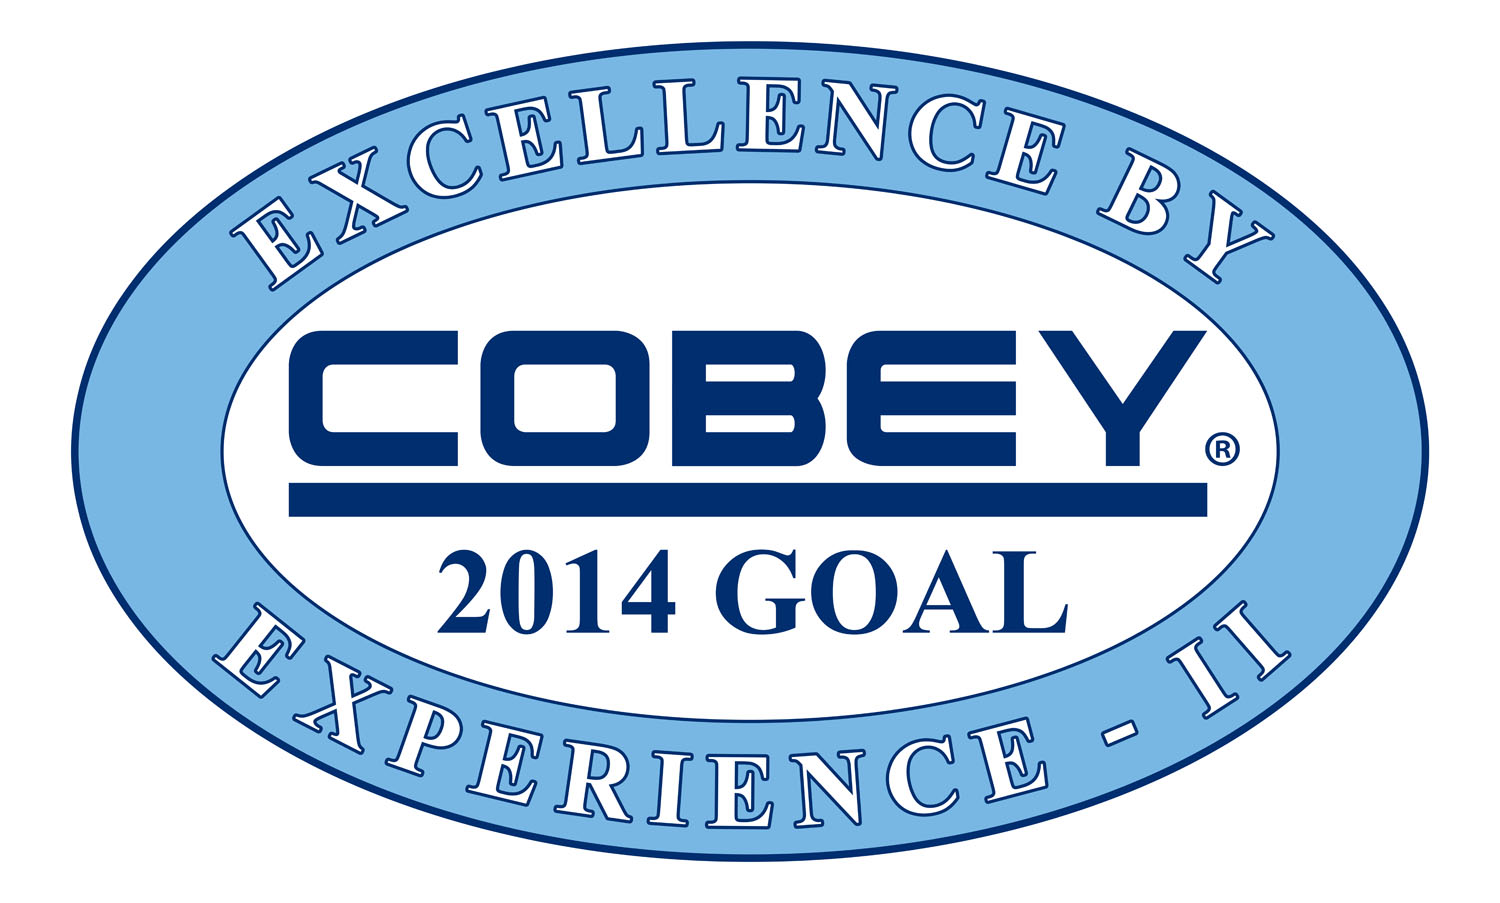 Cobey 2014 Goal - Excellence by Experience Pt II